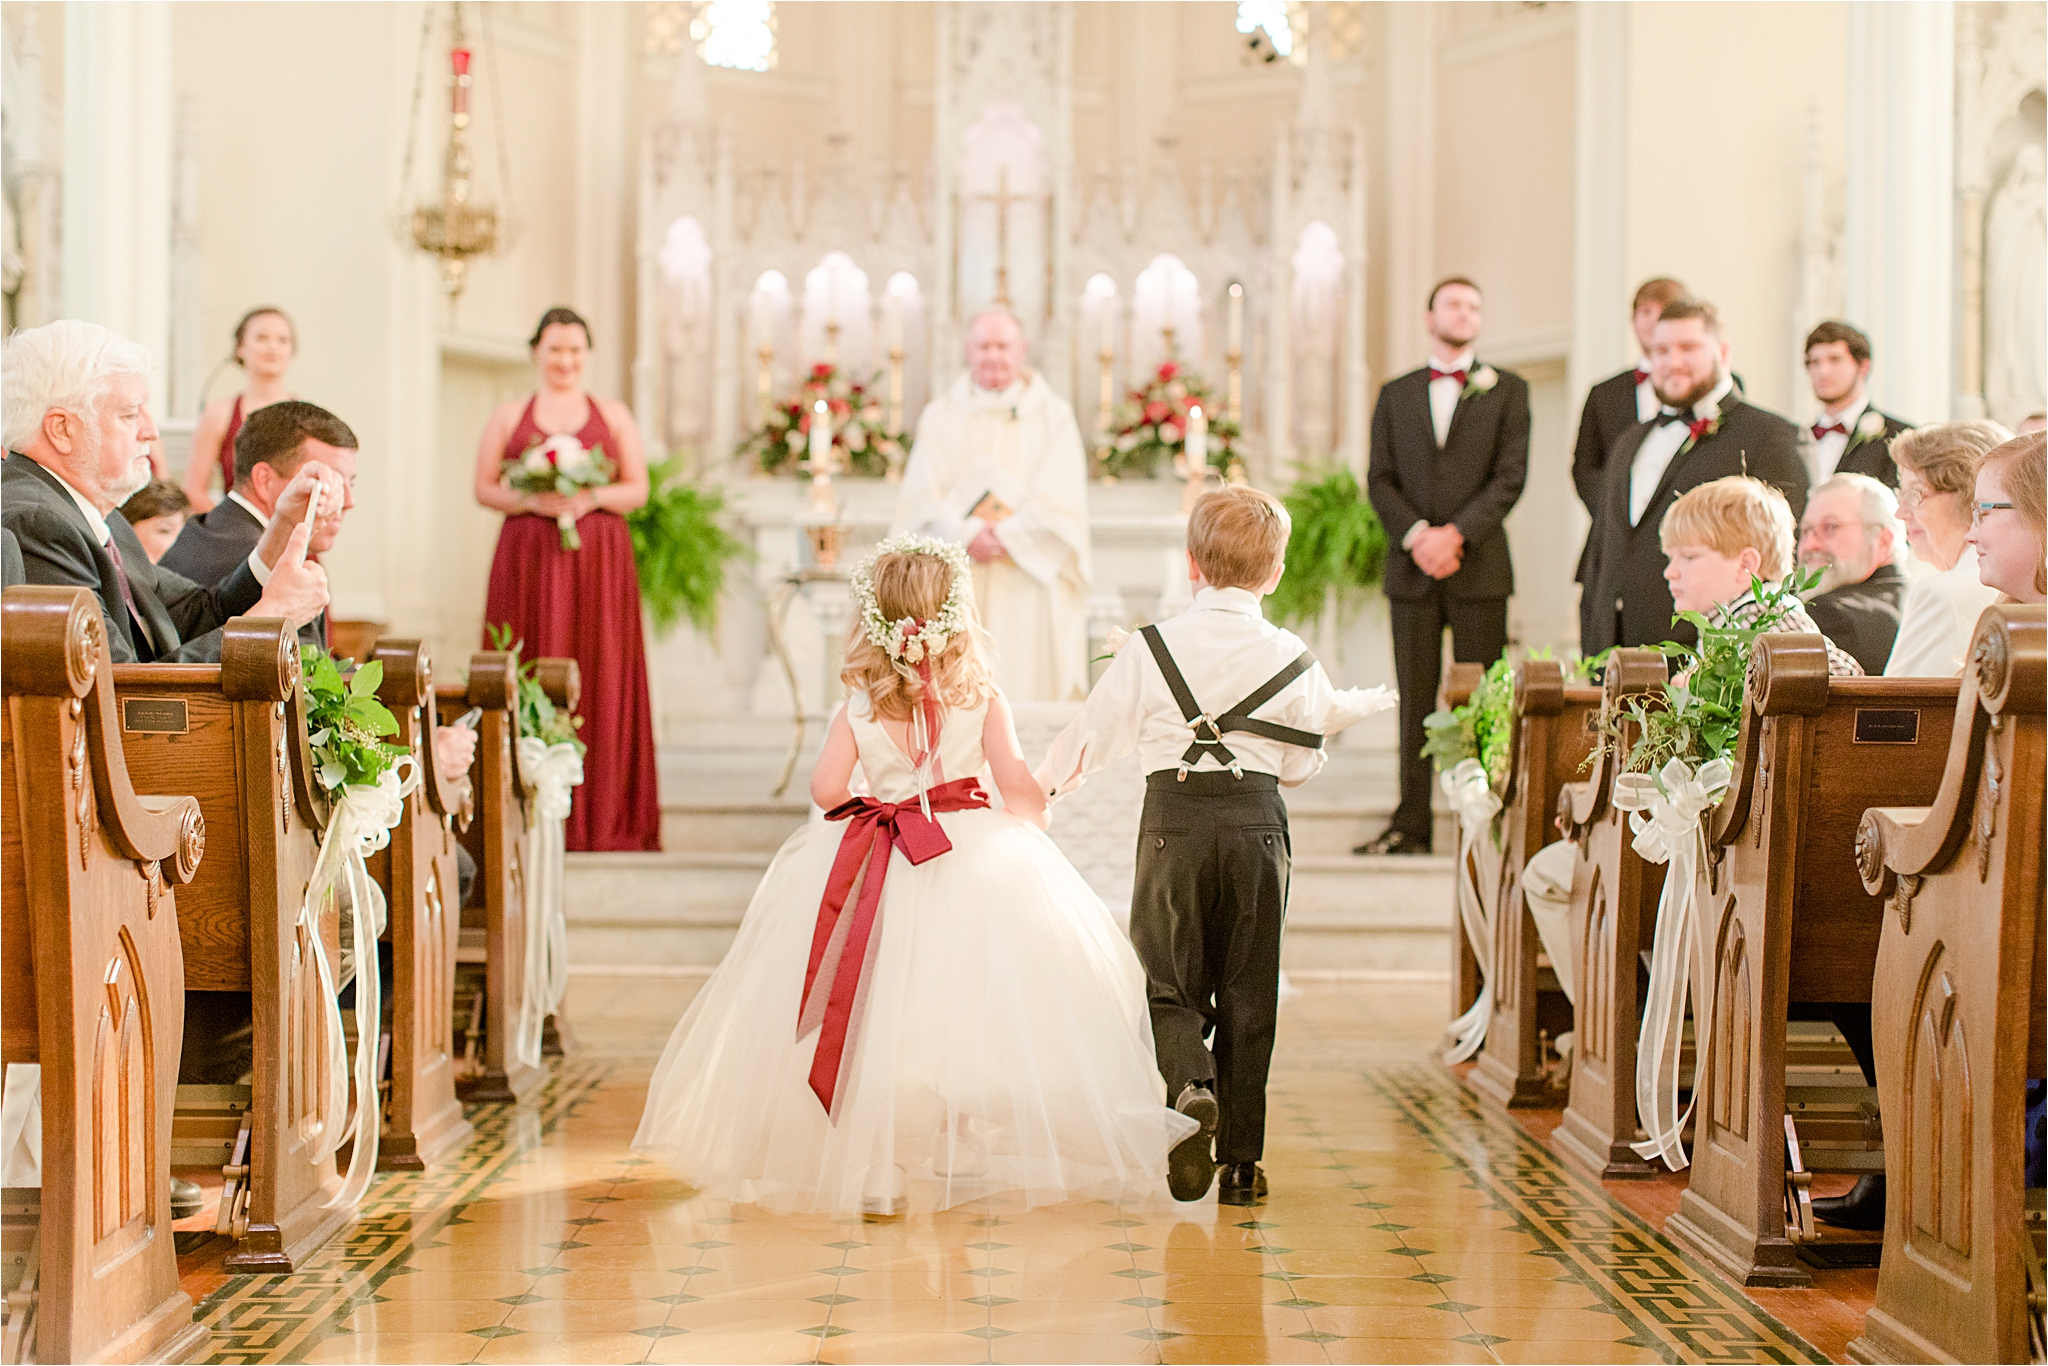 flower-girl-ring-bearer-holding-hands-walking-down-aisle-cranberry-wedding-colors-full-skirt